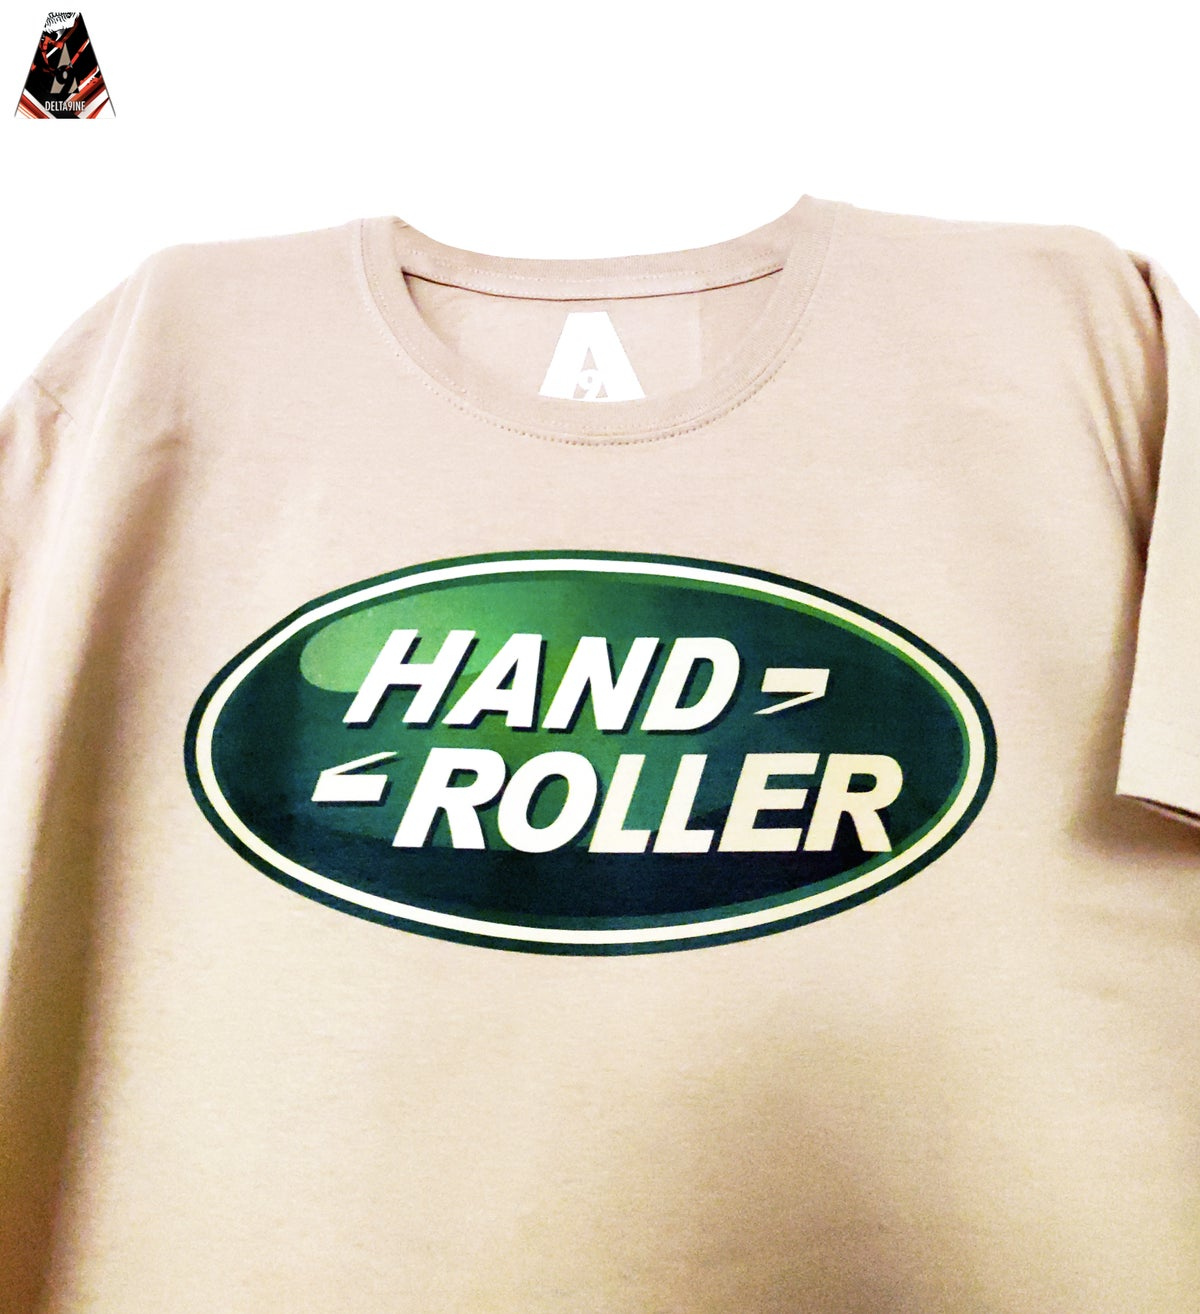 "Image of ΔELTA9INE ""HAND-ROLLER"" T-SHIRT"